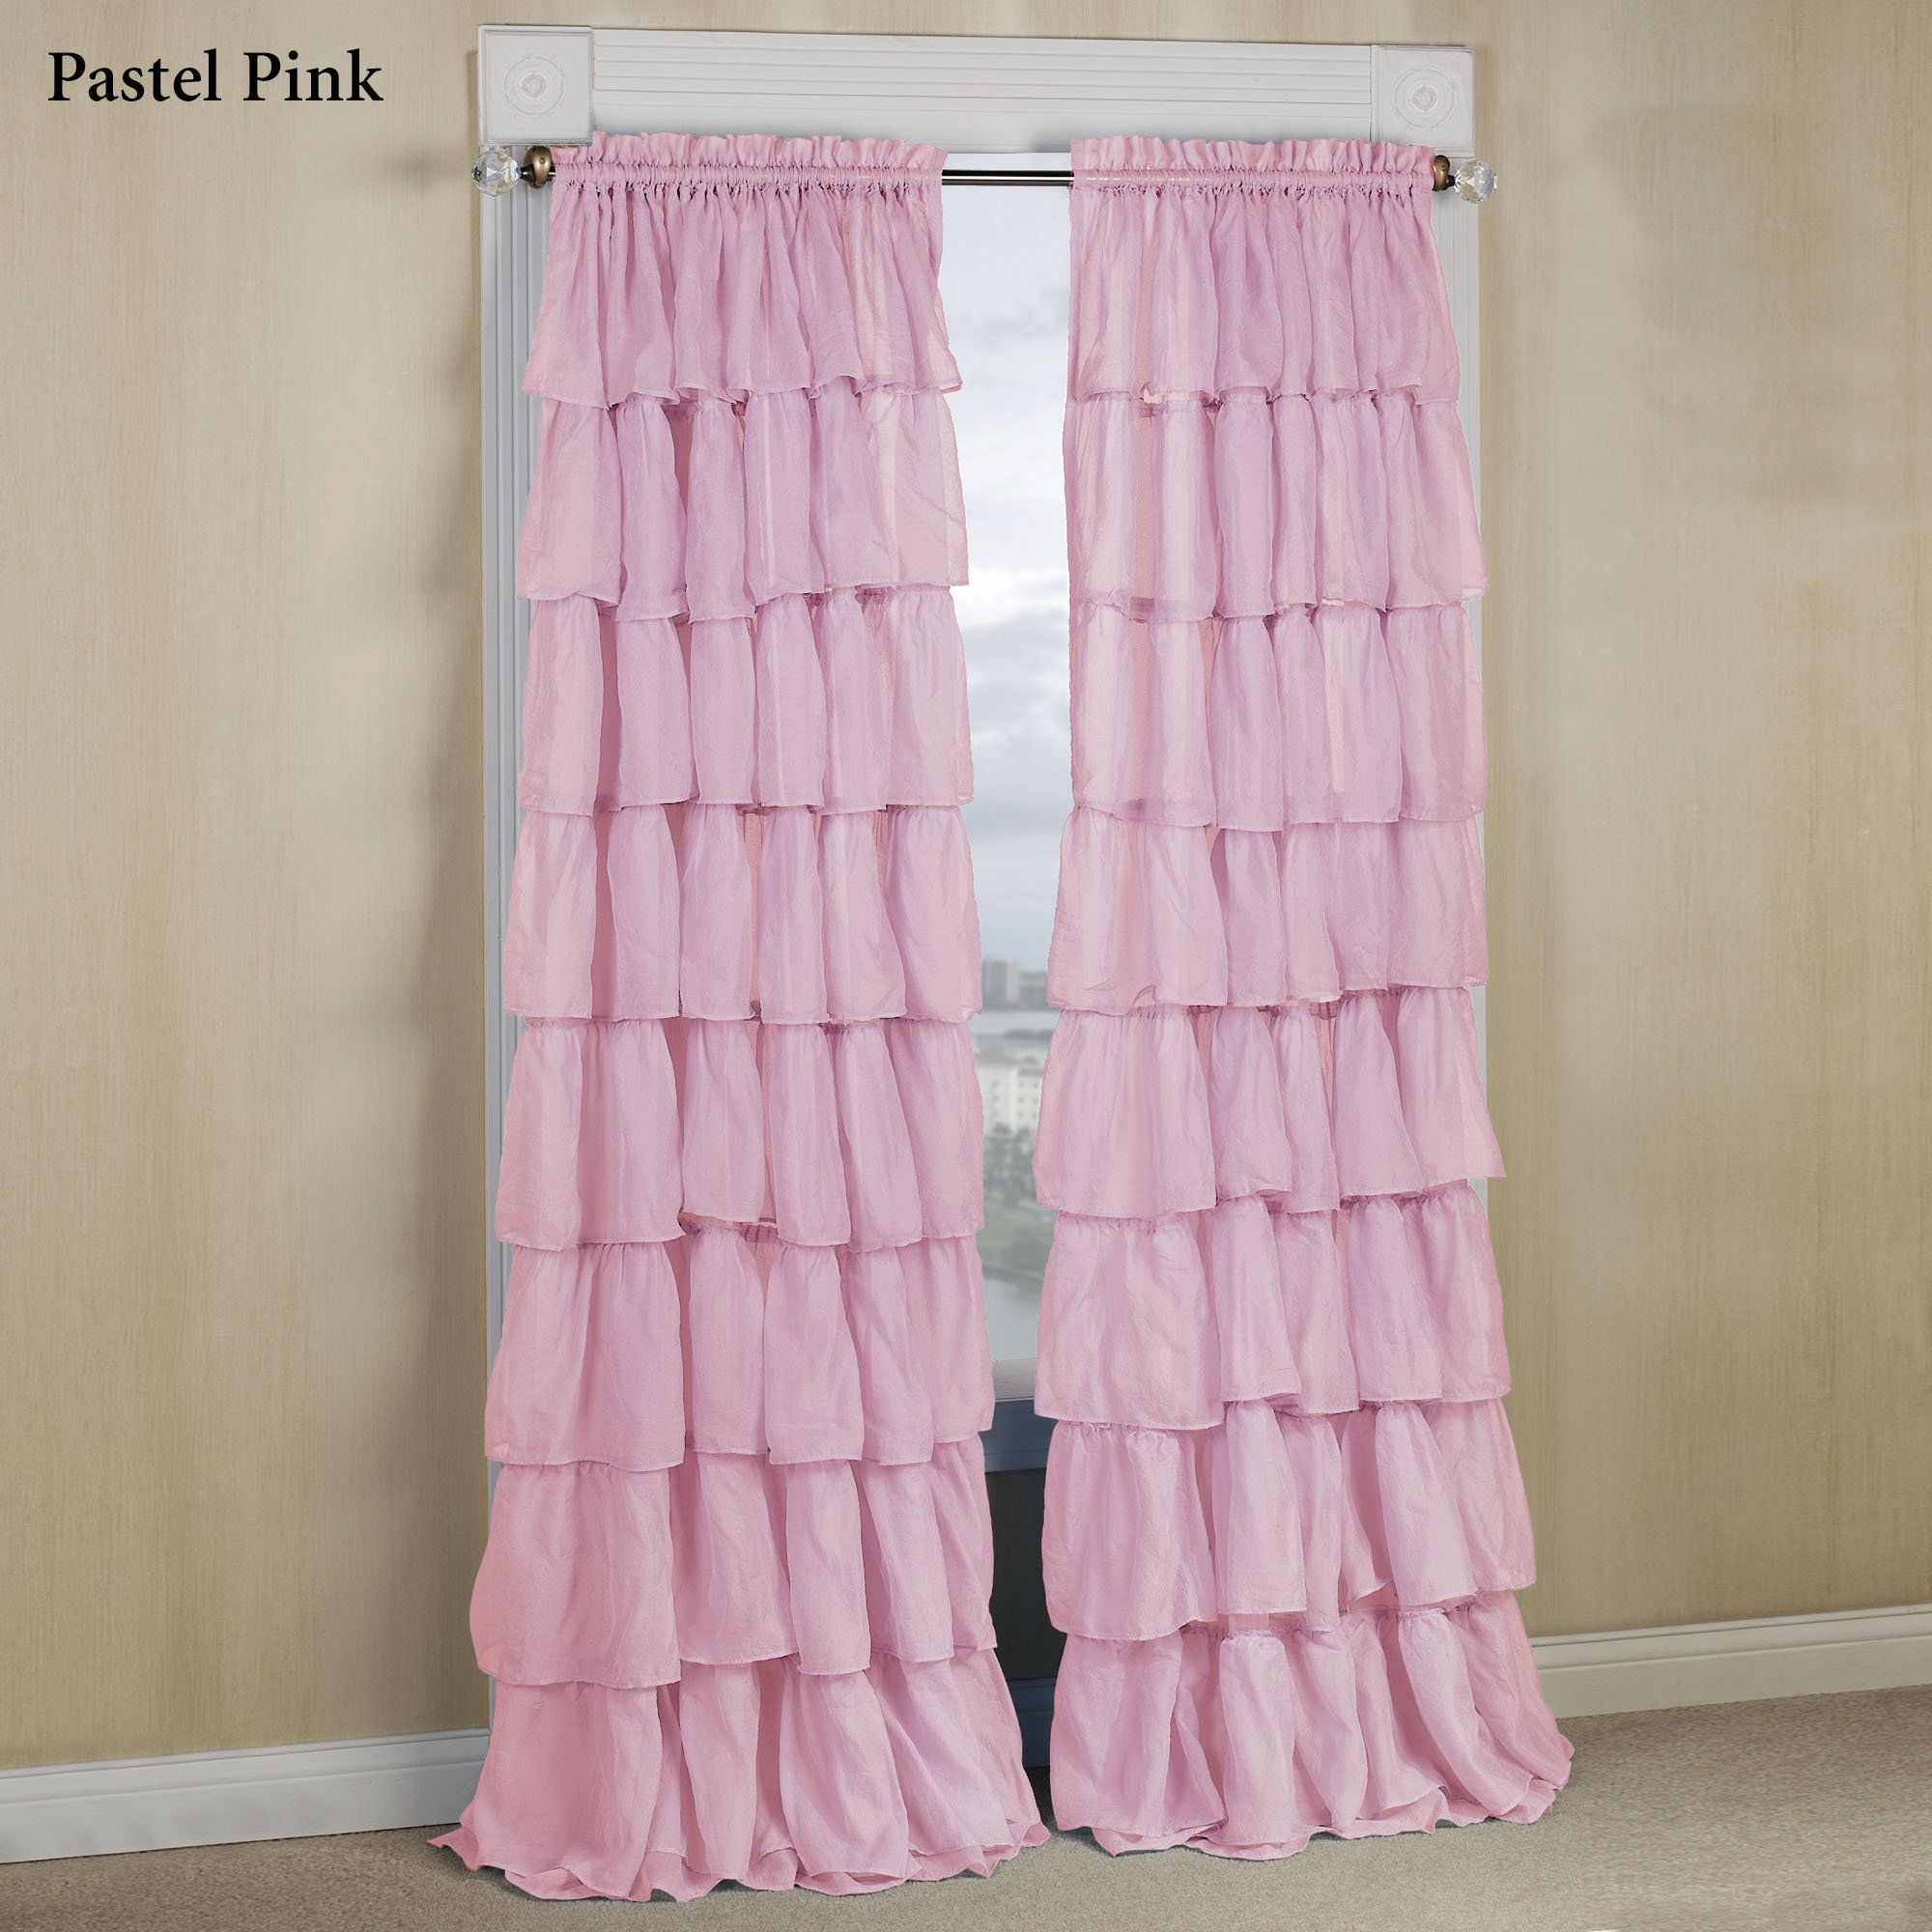 Light pink shower curtain - Light Pink Shower Curtains Gallery Of Light Pink Ruffle Shower Curtain